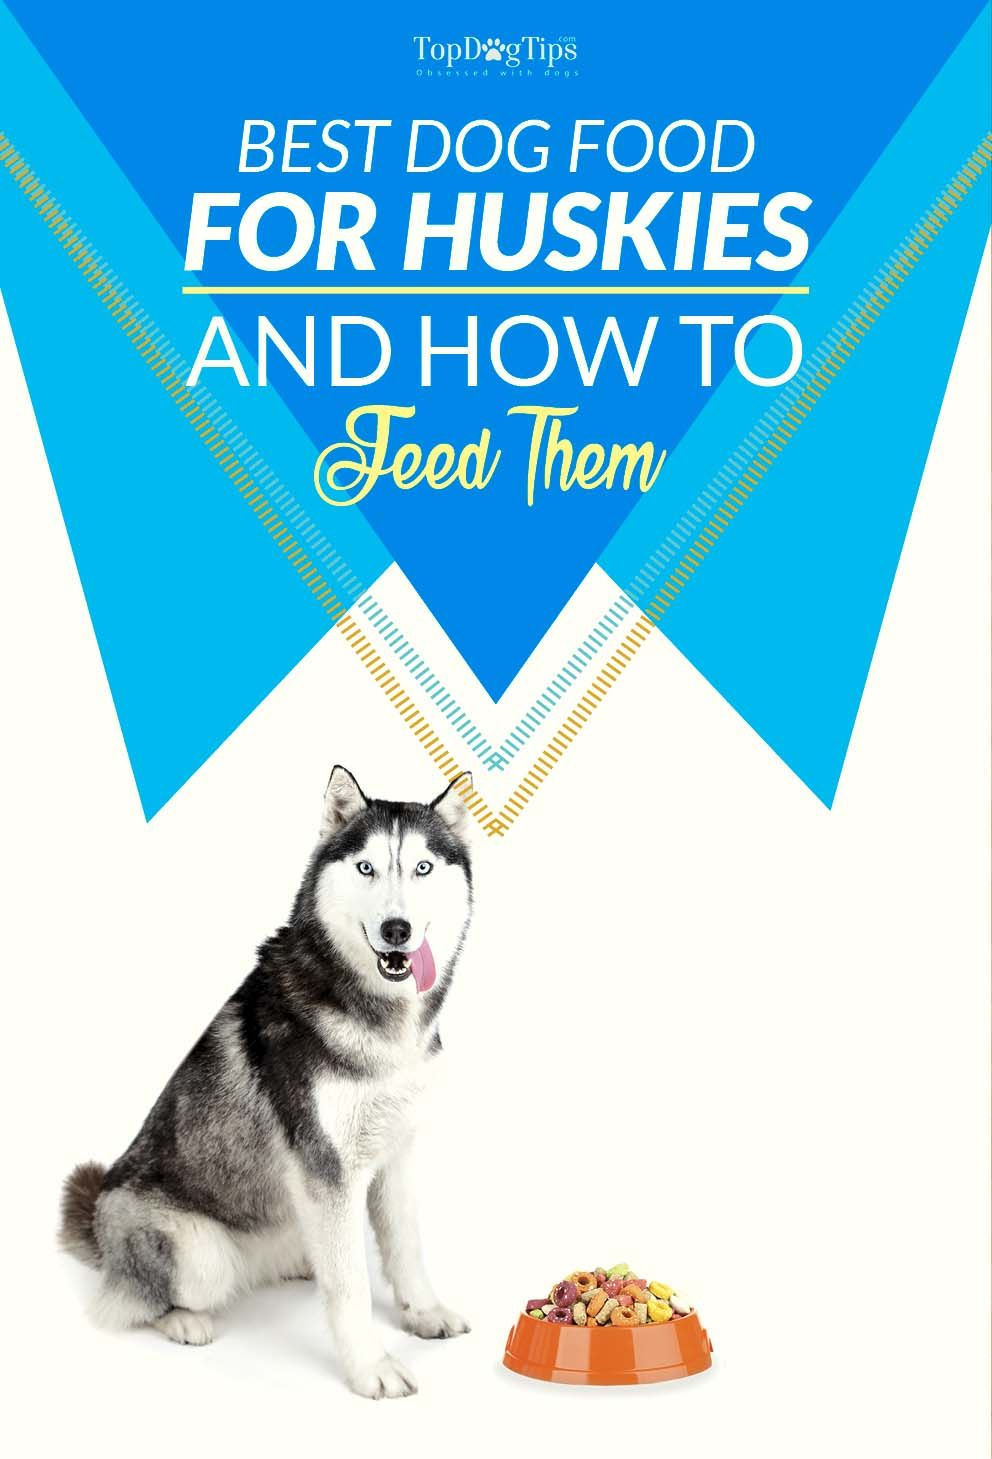 Best Dog Food For Huskies In 2020 The 5 Vet Recommended Brands